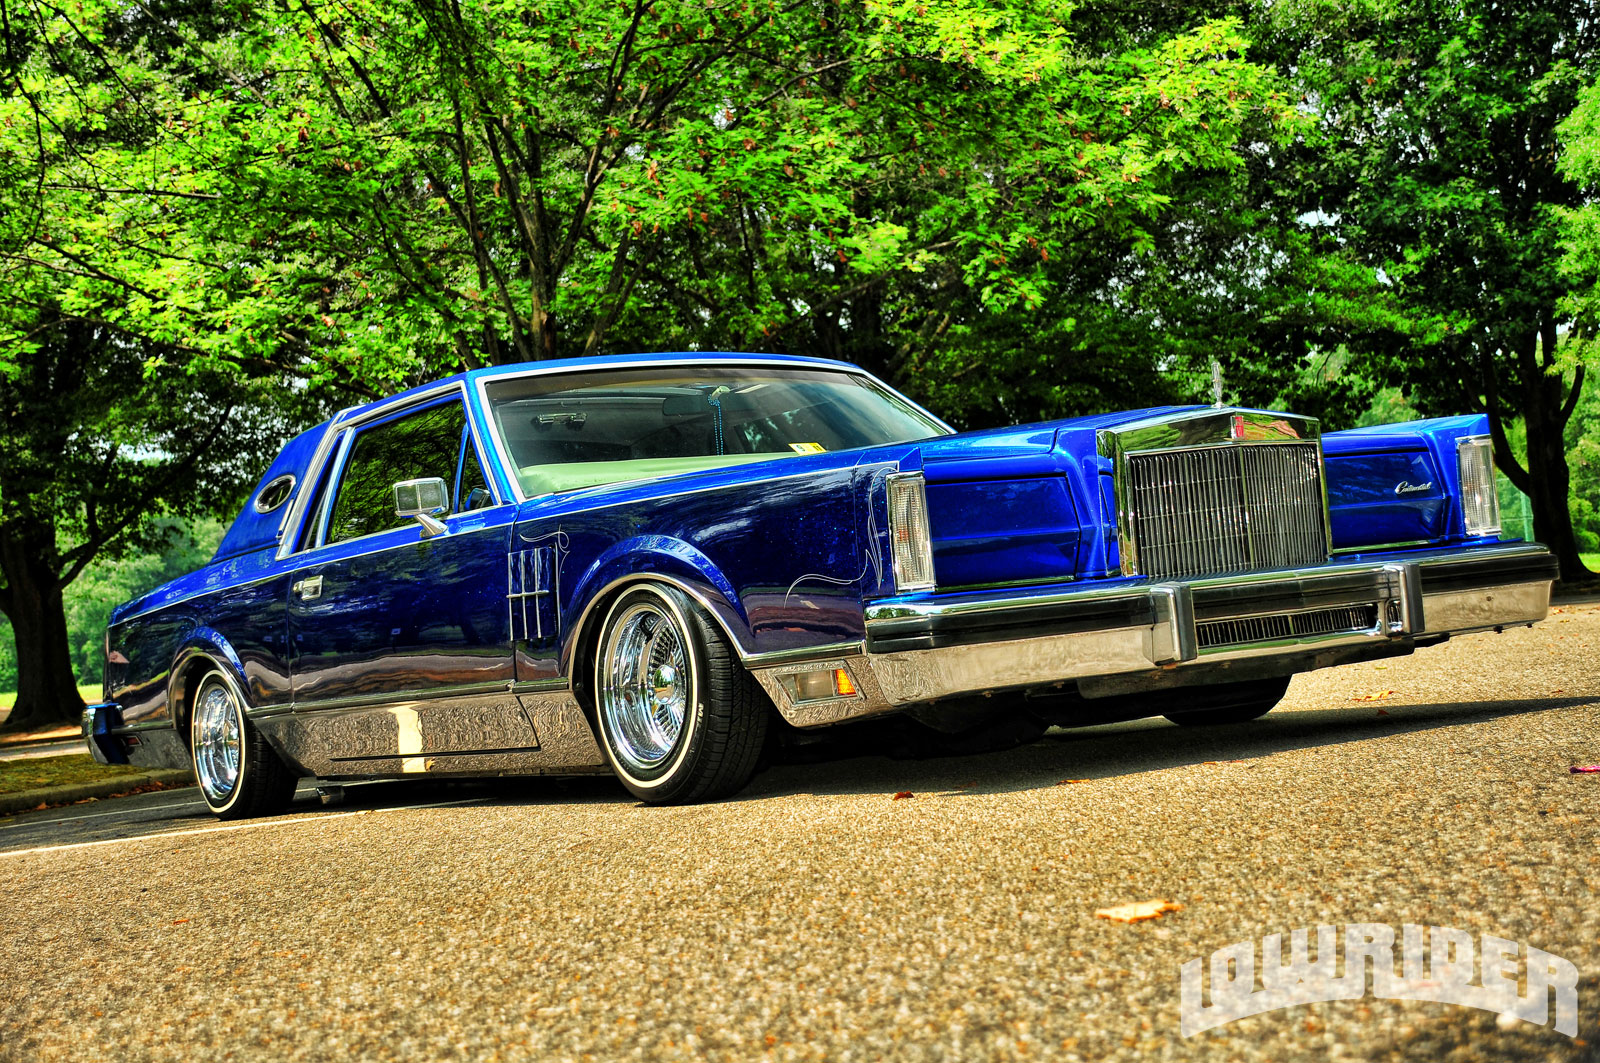 1211 lrmp 22 o 1981 lincoln mark vi house of kolor kandy blue lowrider rh lowrider com 2000 Lincoln Town Car Lowrider Cadillac Fleetwood Lowrider